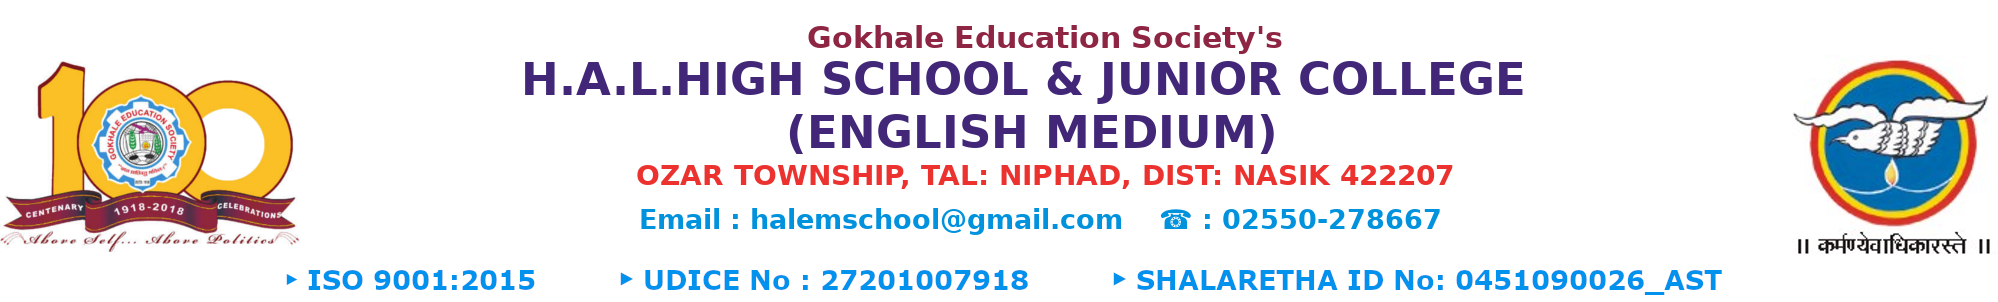 G.E.S H.A.L. HIGH SCHOOL & JUNIOR COLLEGE  (ENGLISH MEDIUM)